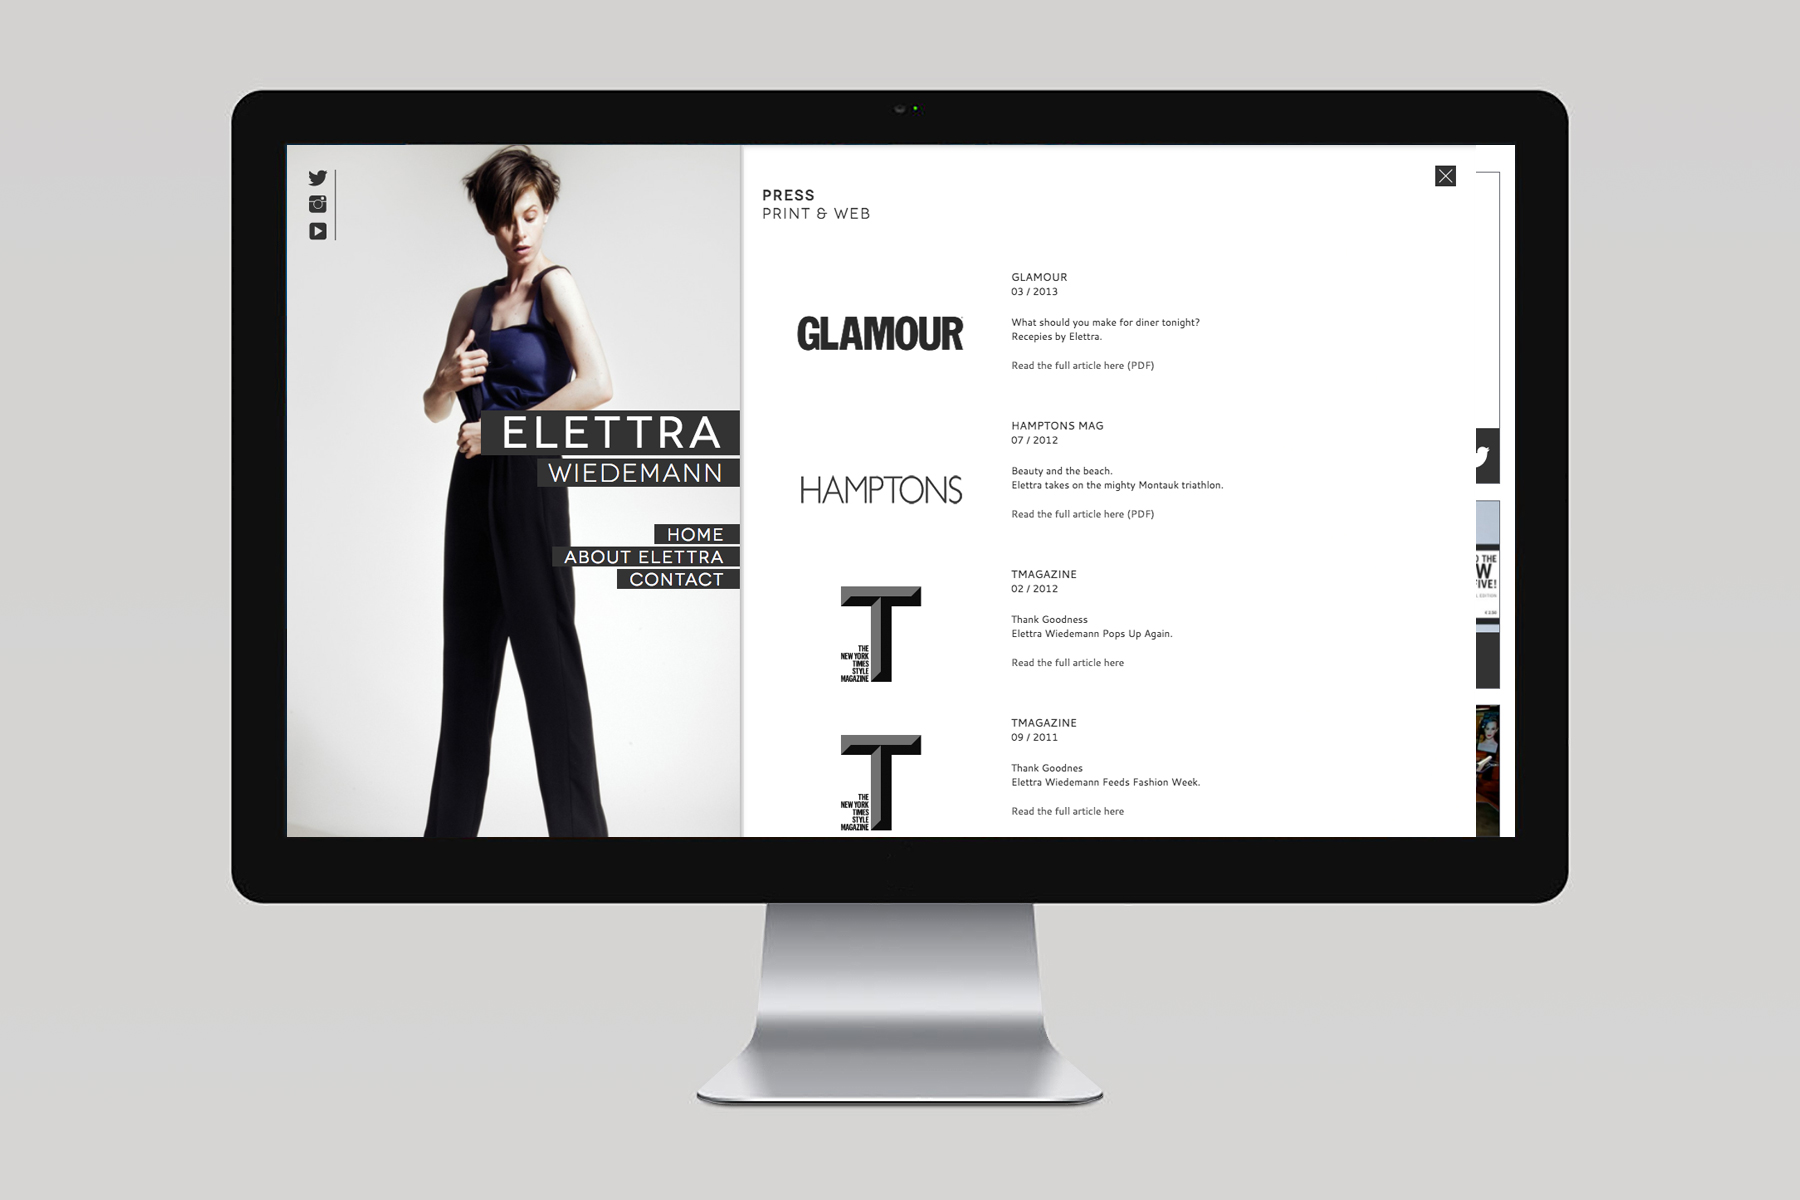 Elettra-Screen2